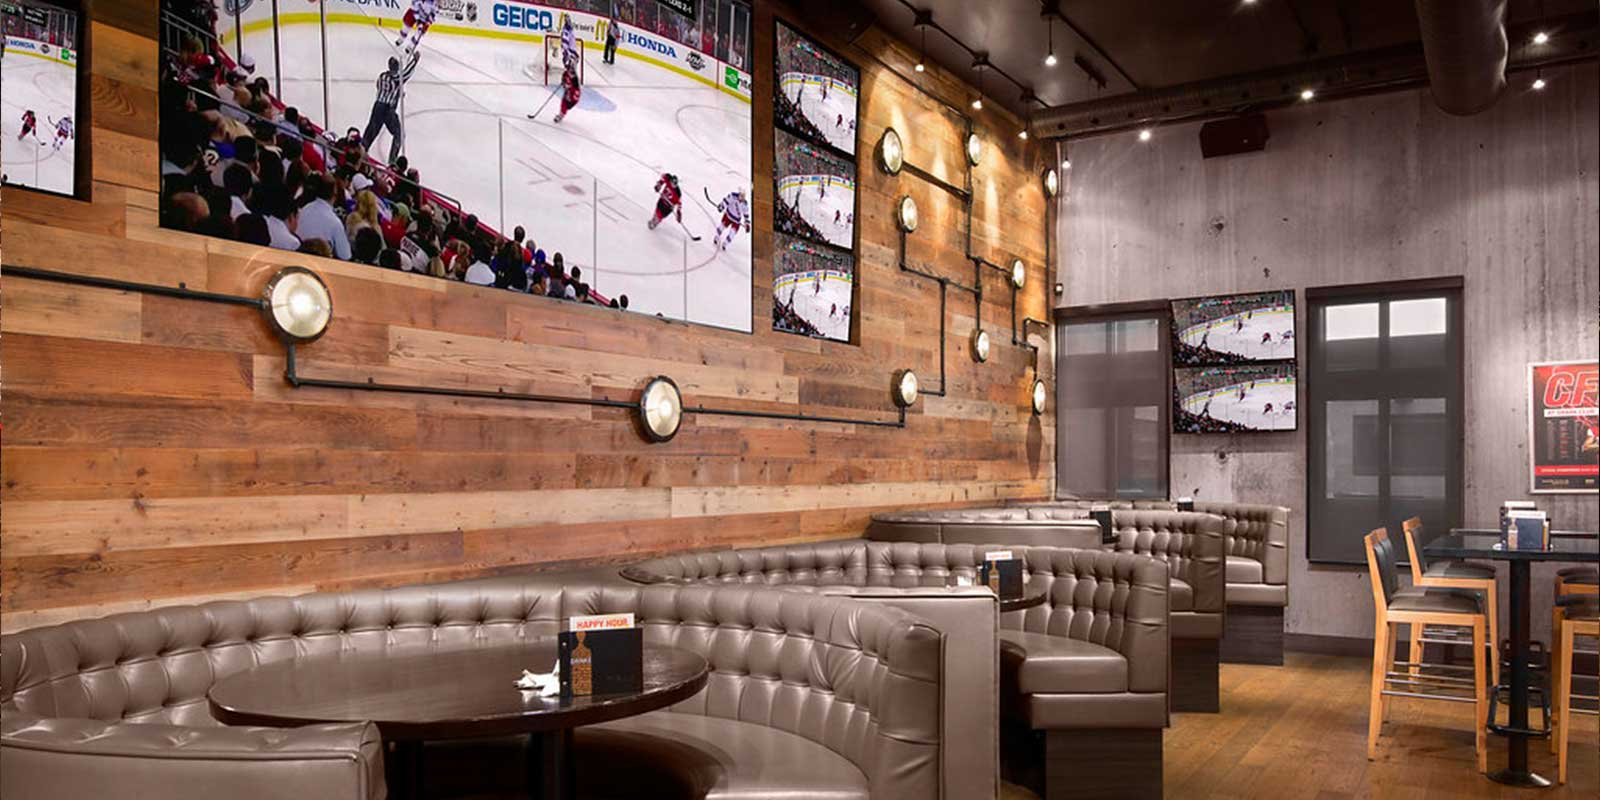 Shark Club Sports Bar & Grill - Calgary North